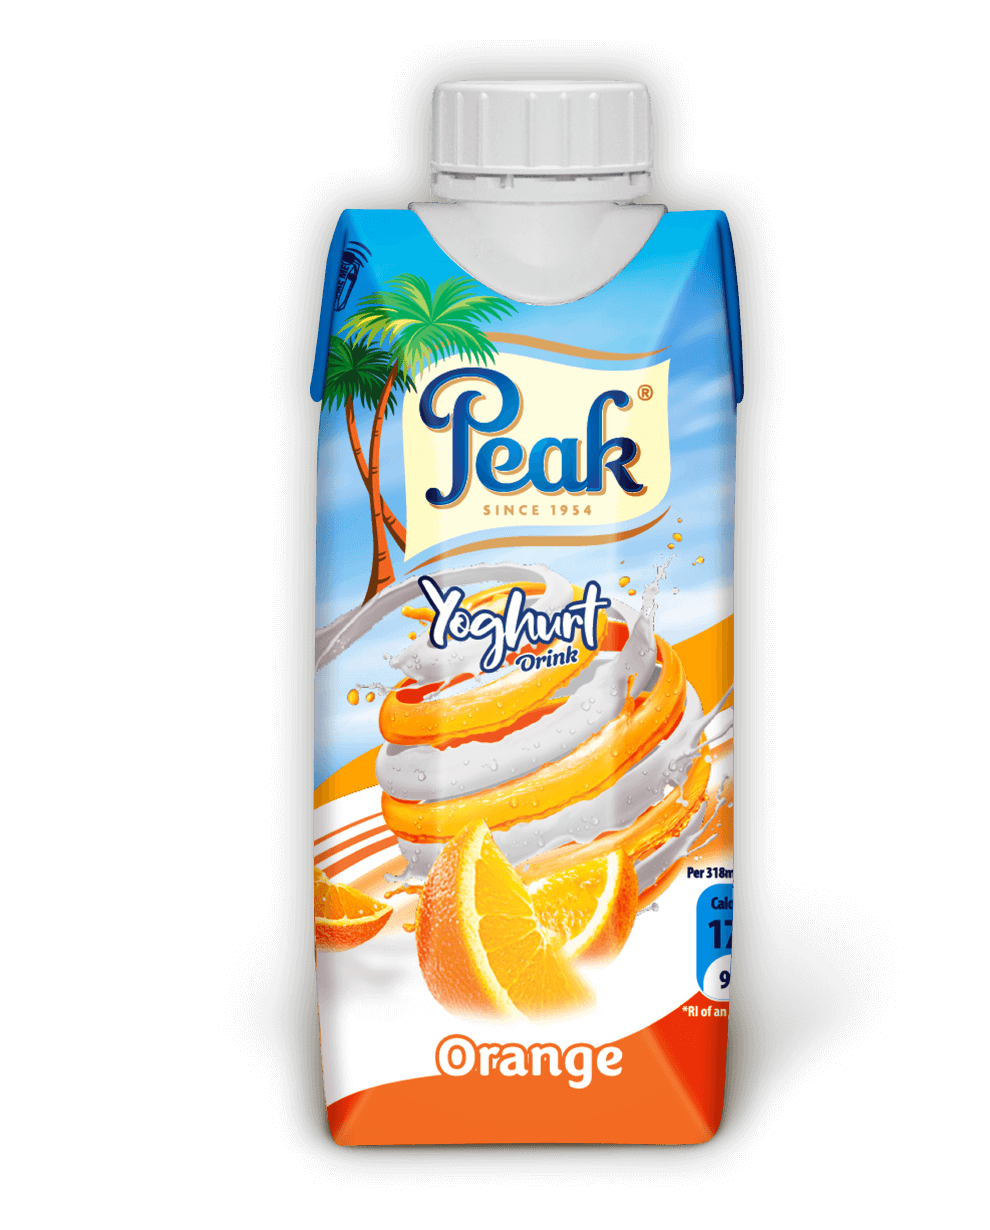 Peak Yoghurt Drink Orange